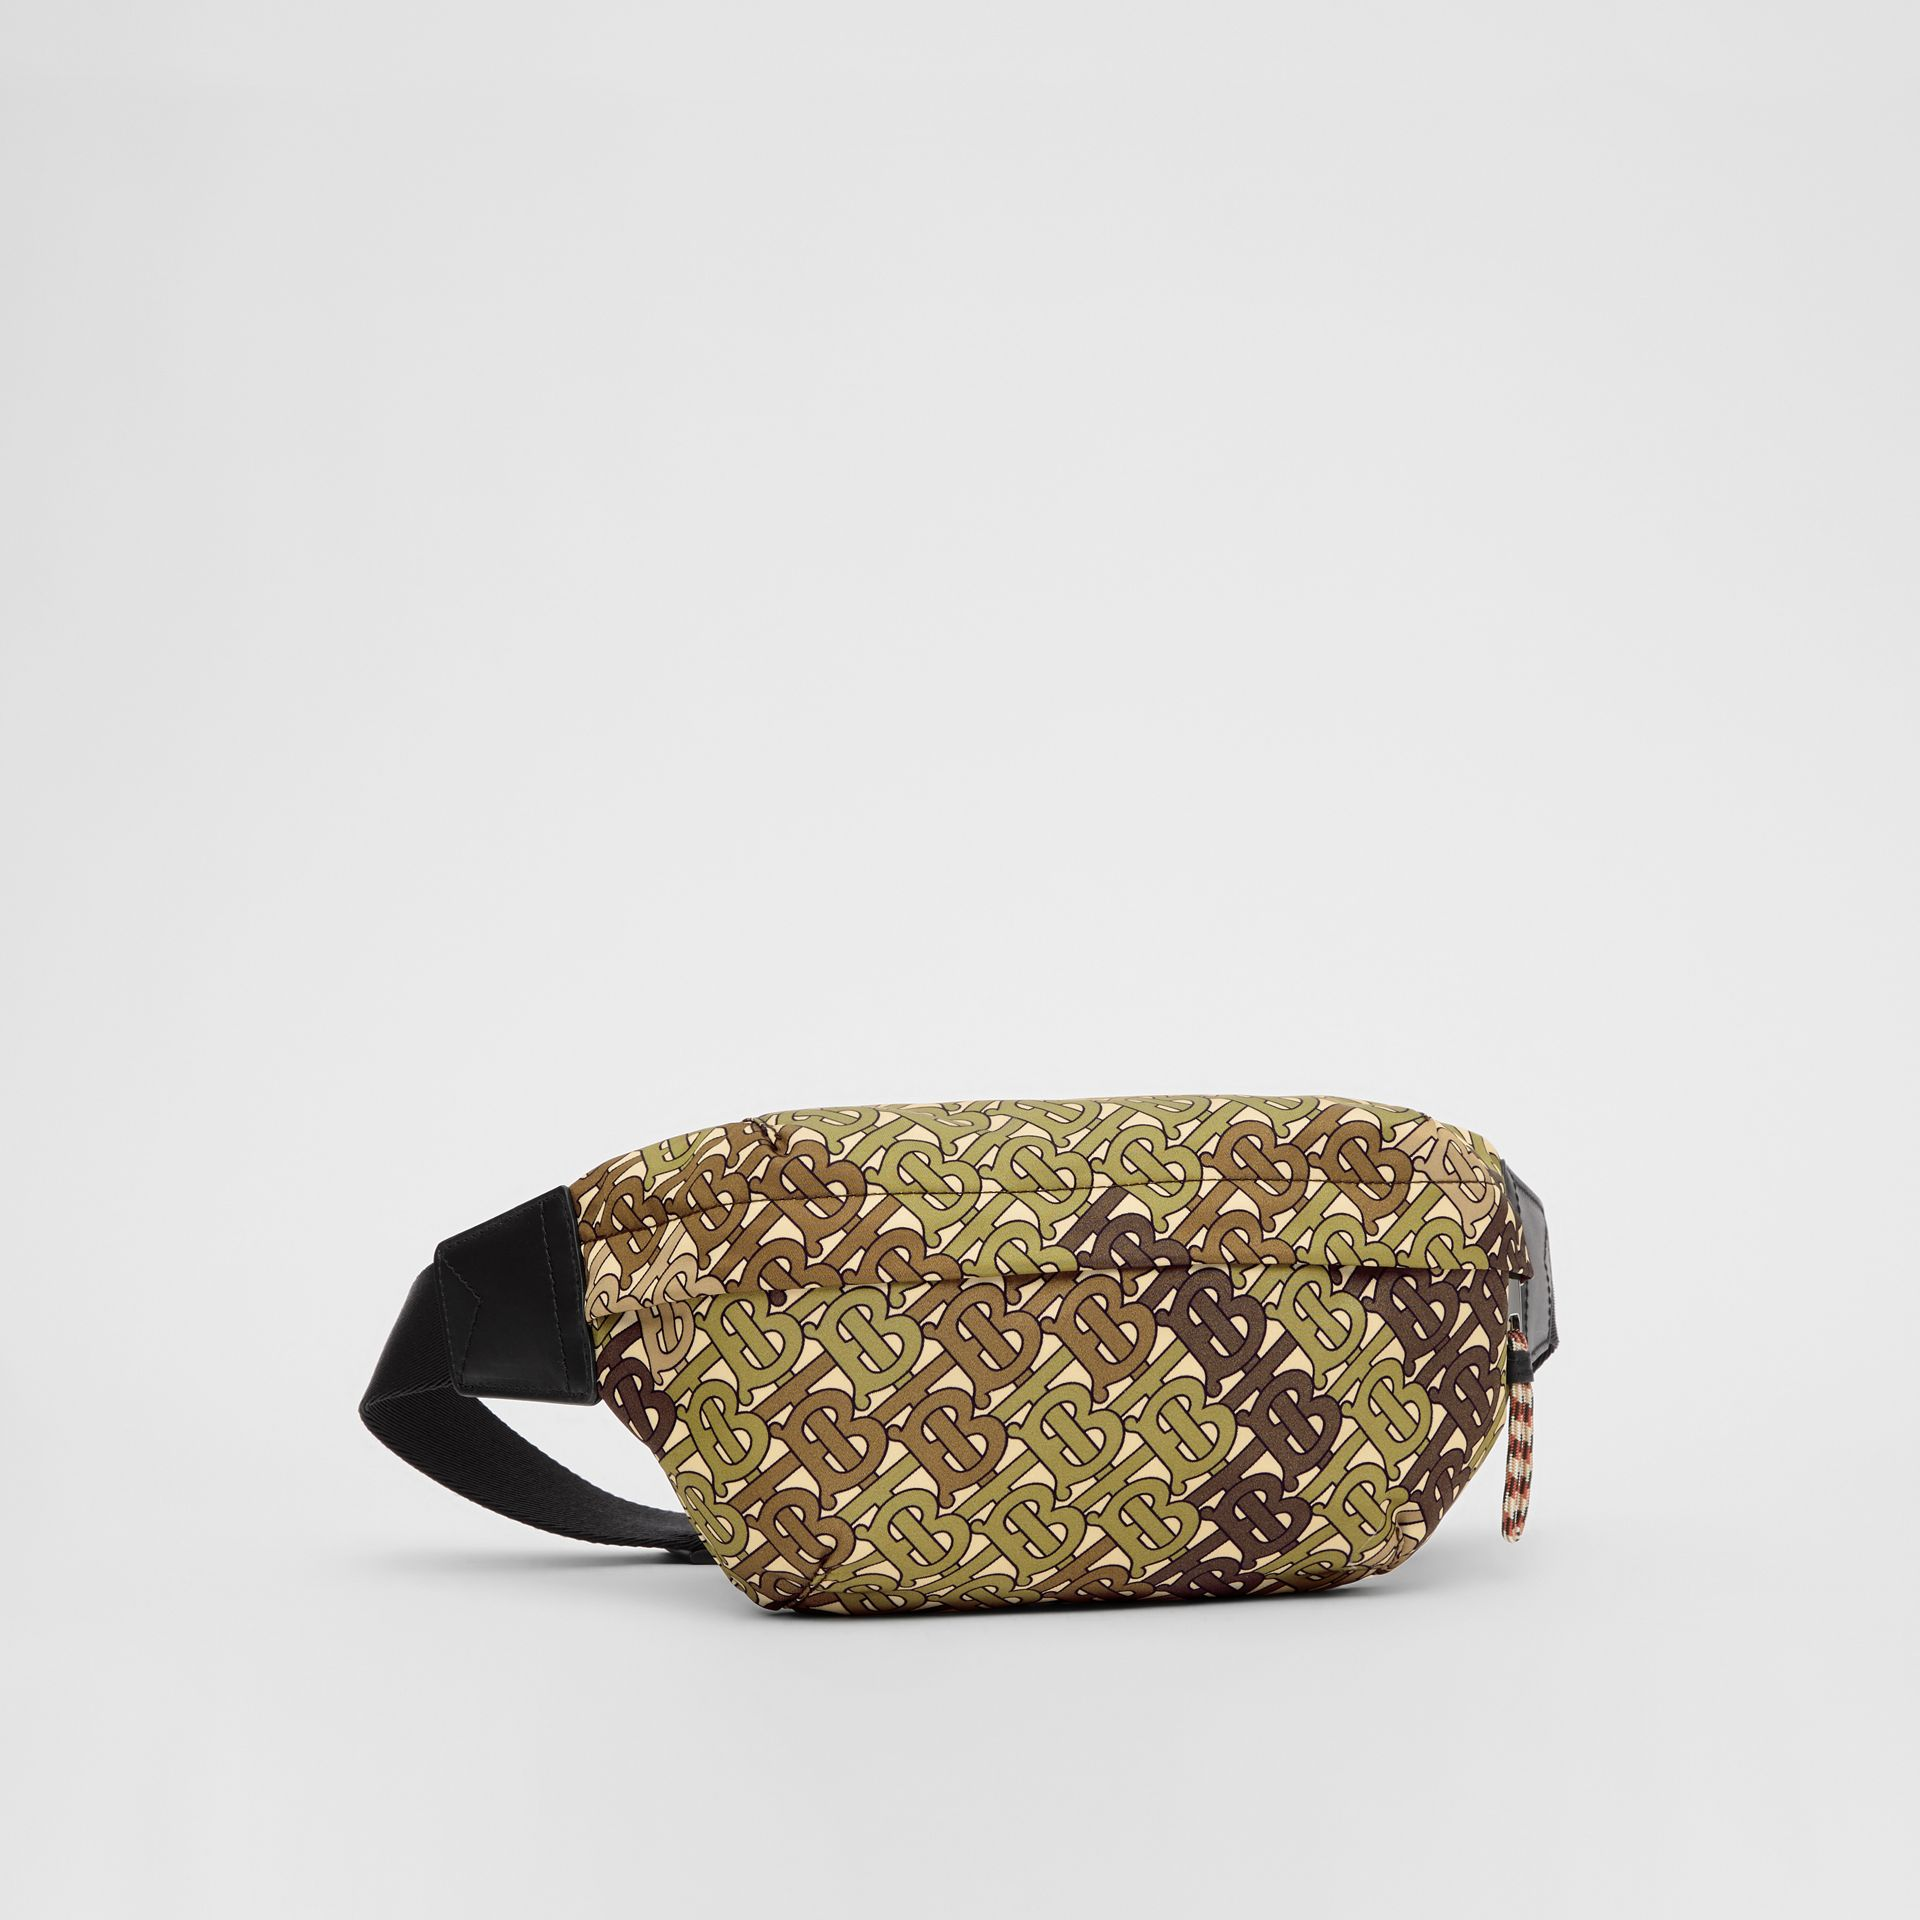 Medium Monogram Print Bum Bag in Khaki Green | Burberry - gallery image 4